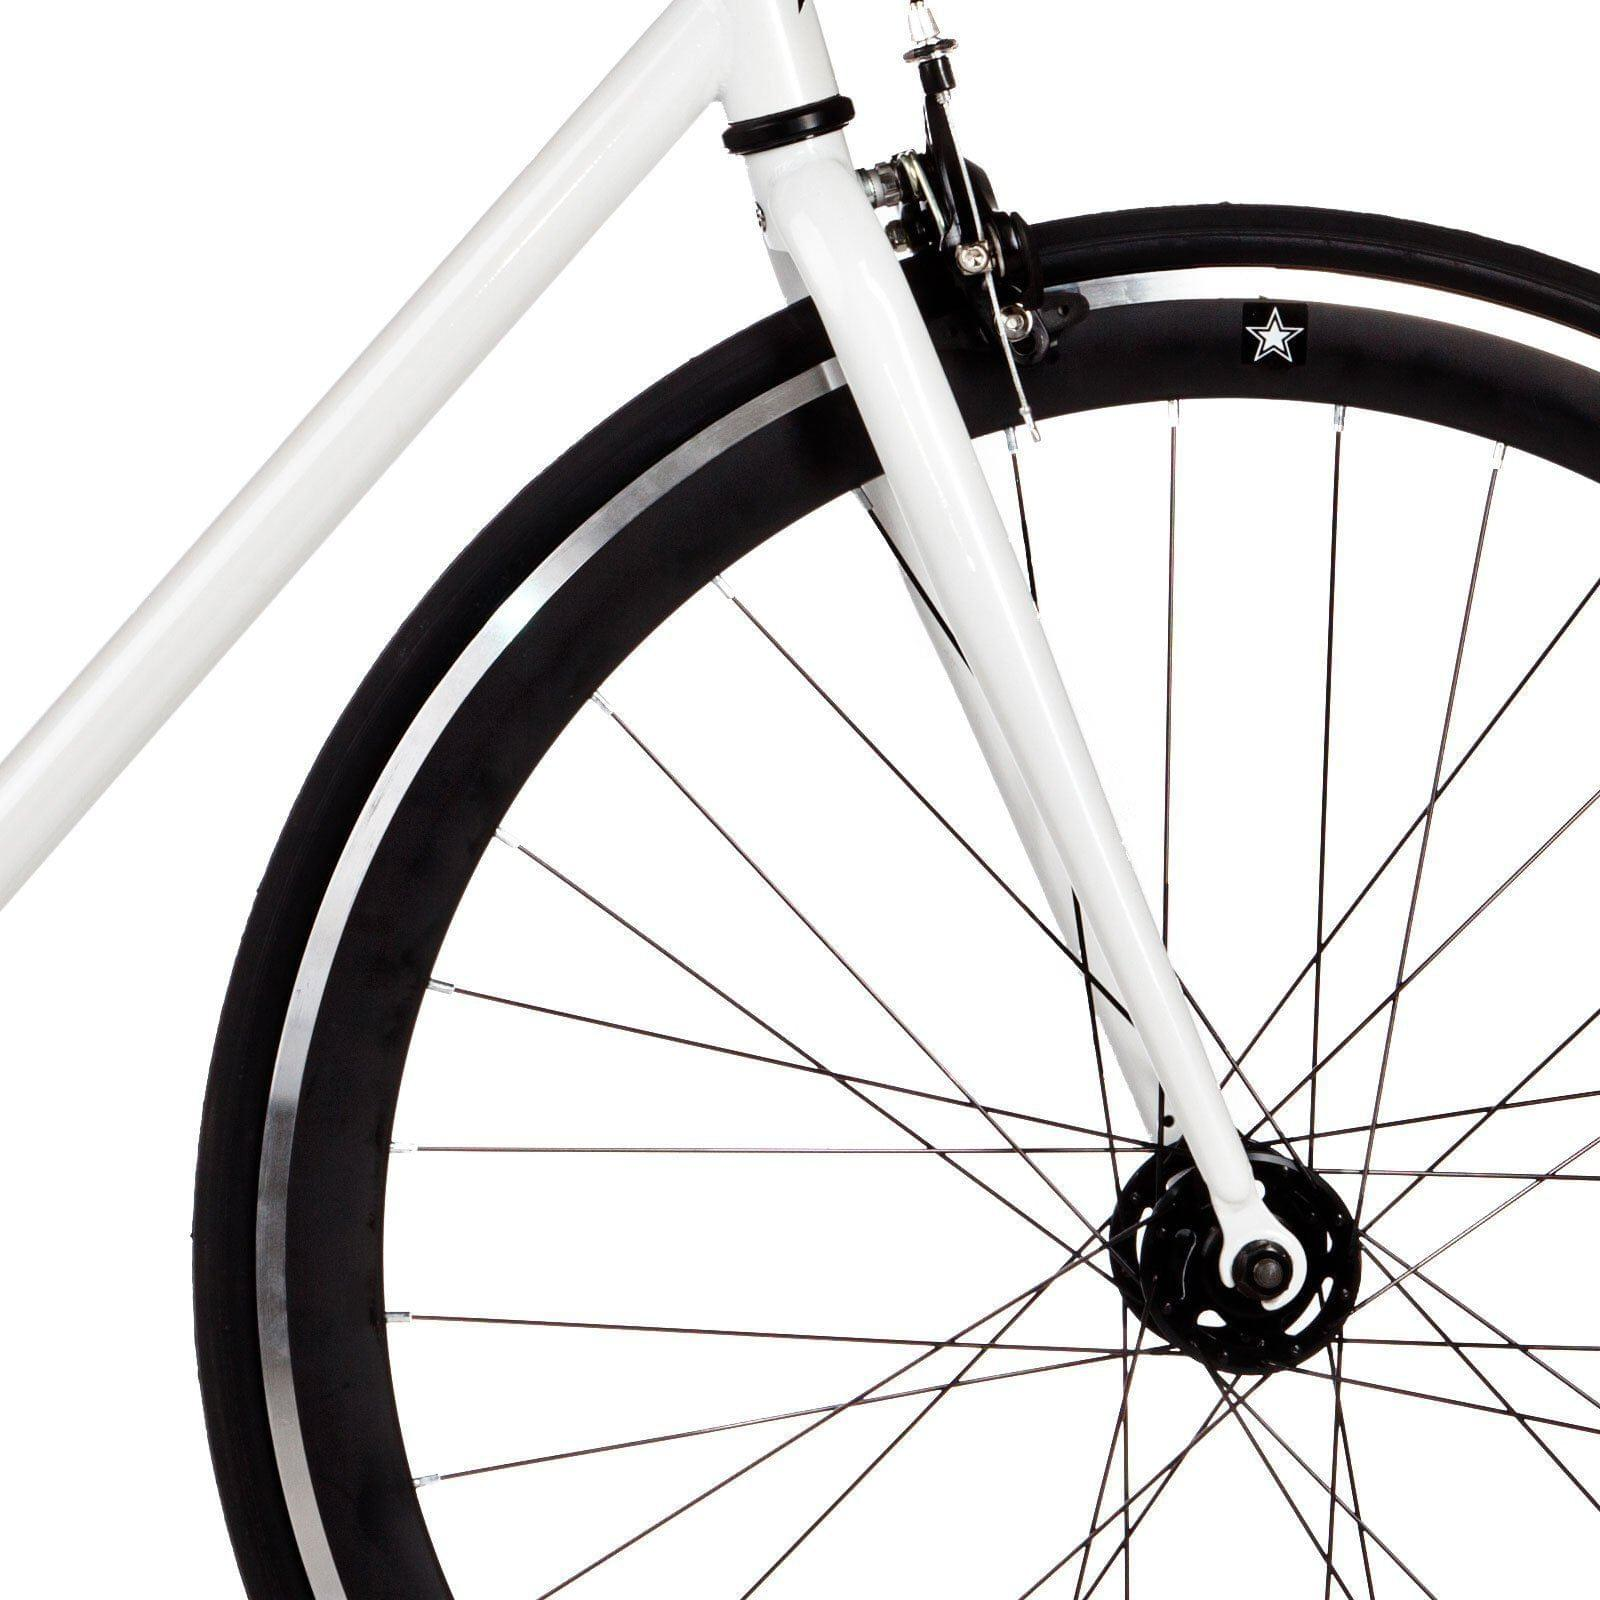 Big Shot Bikes city commuter Custom Fixed Gear Bicycle fixie in white for urban commuting